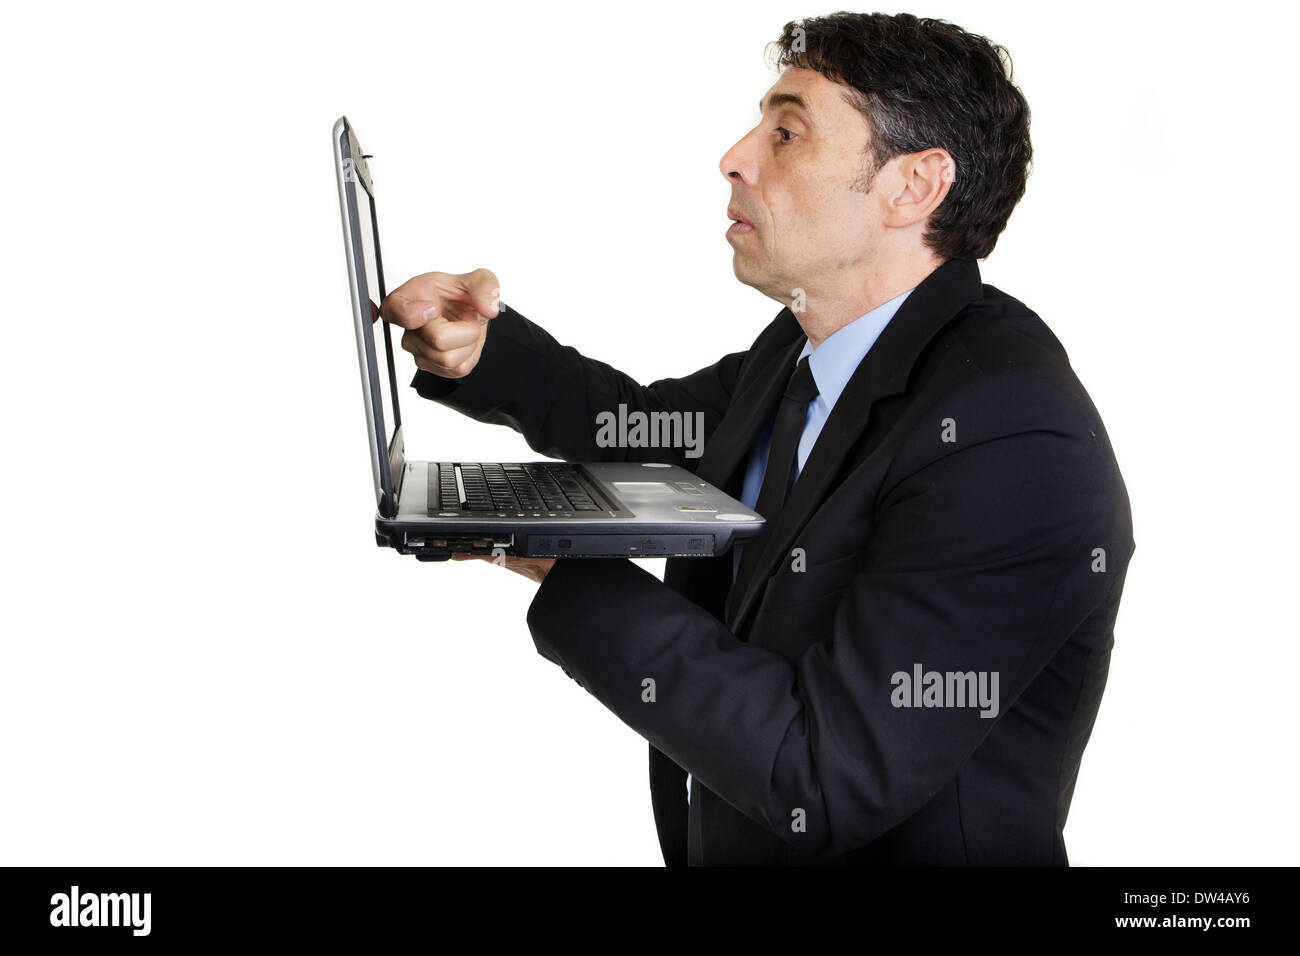 Side view of a serious businessman tapping his laptop screen with his finger as he stands holding it in his hand - Stock Image